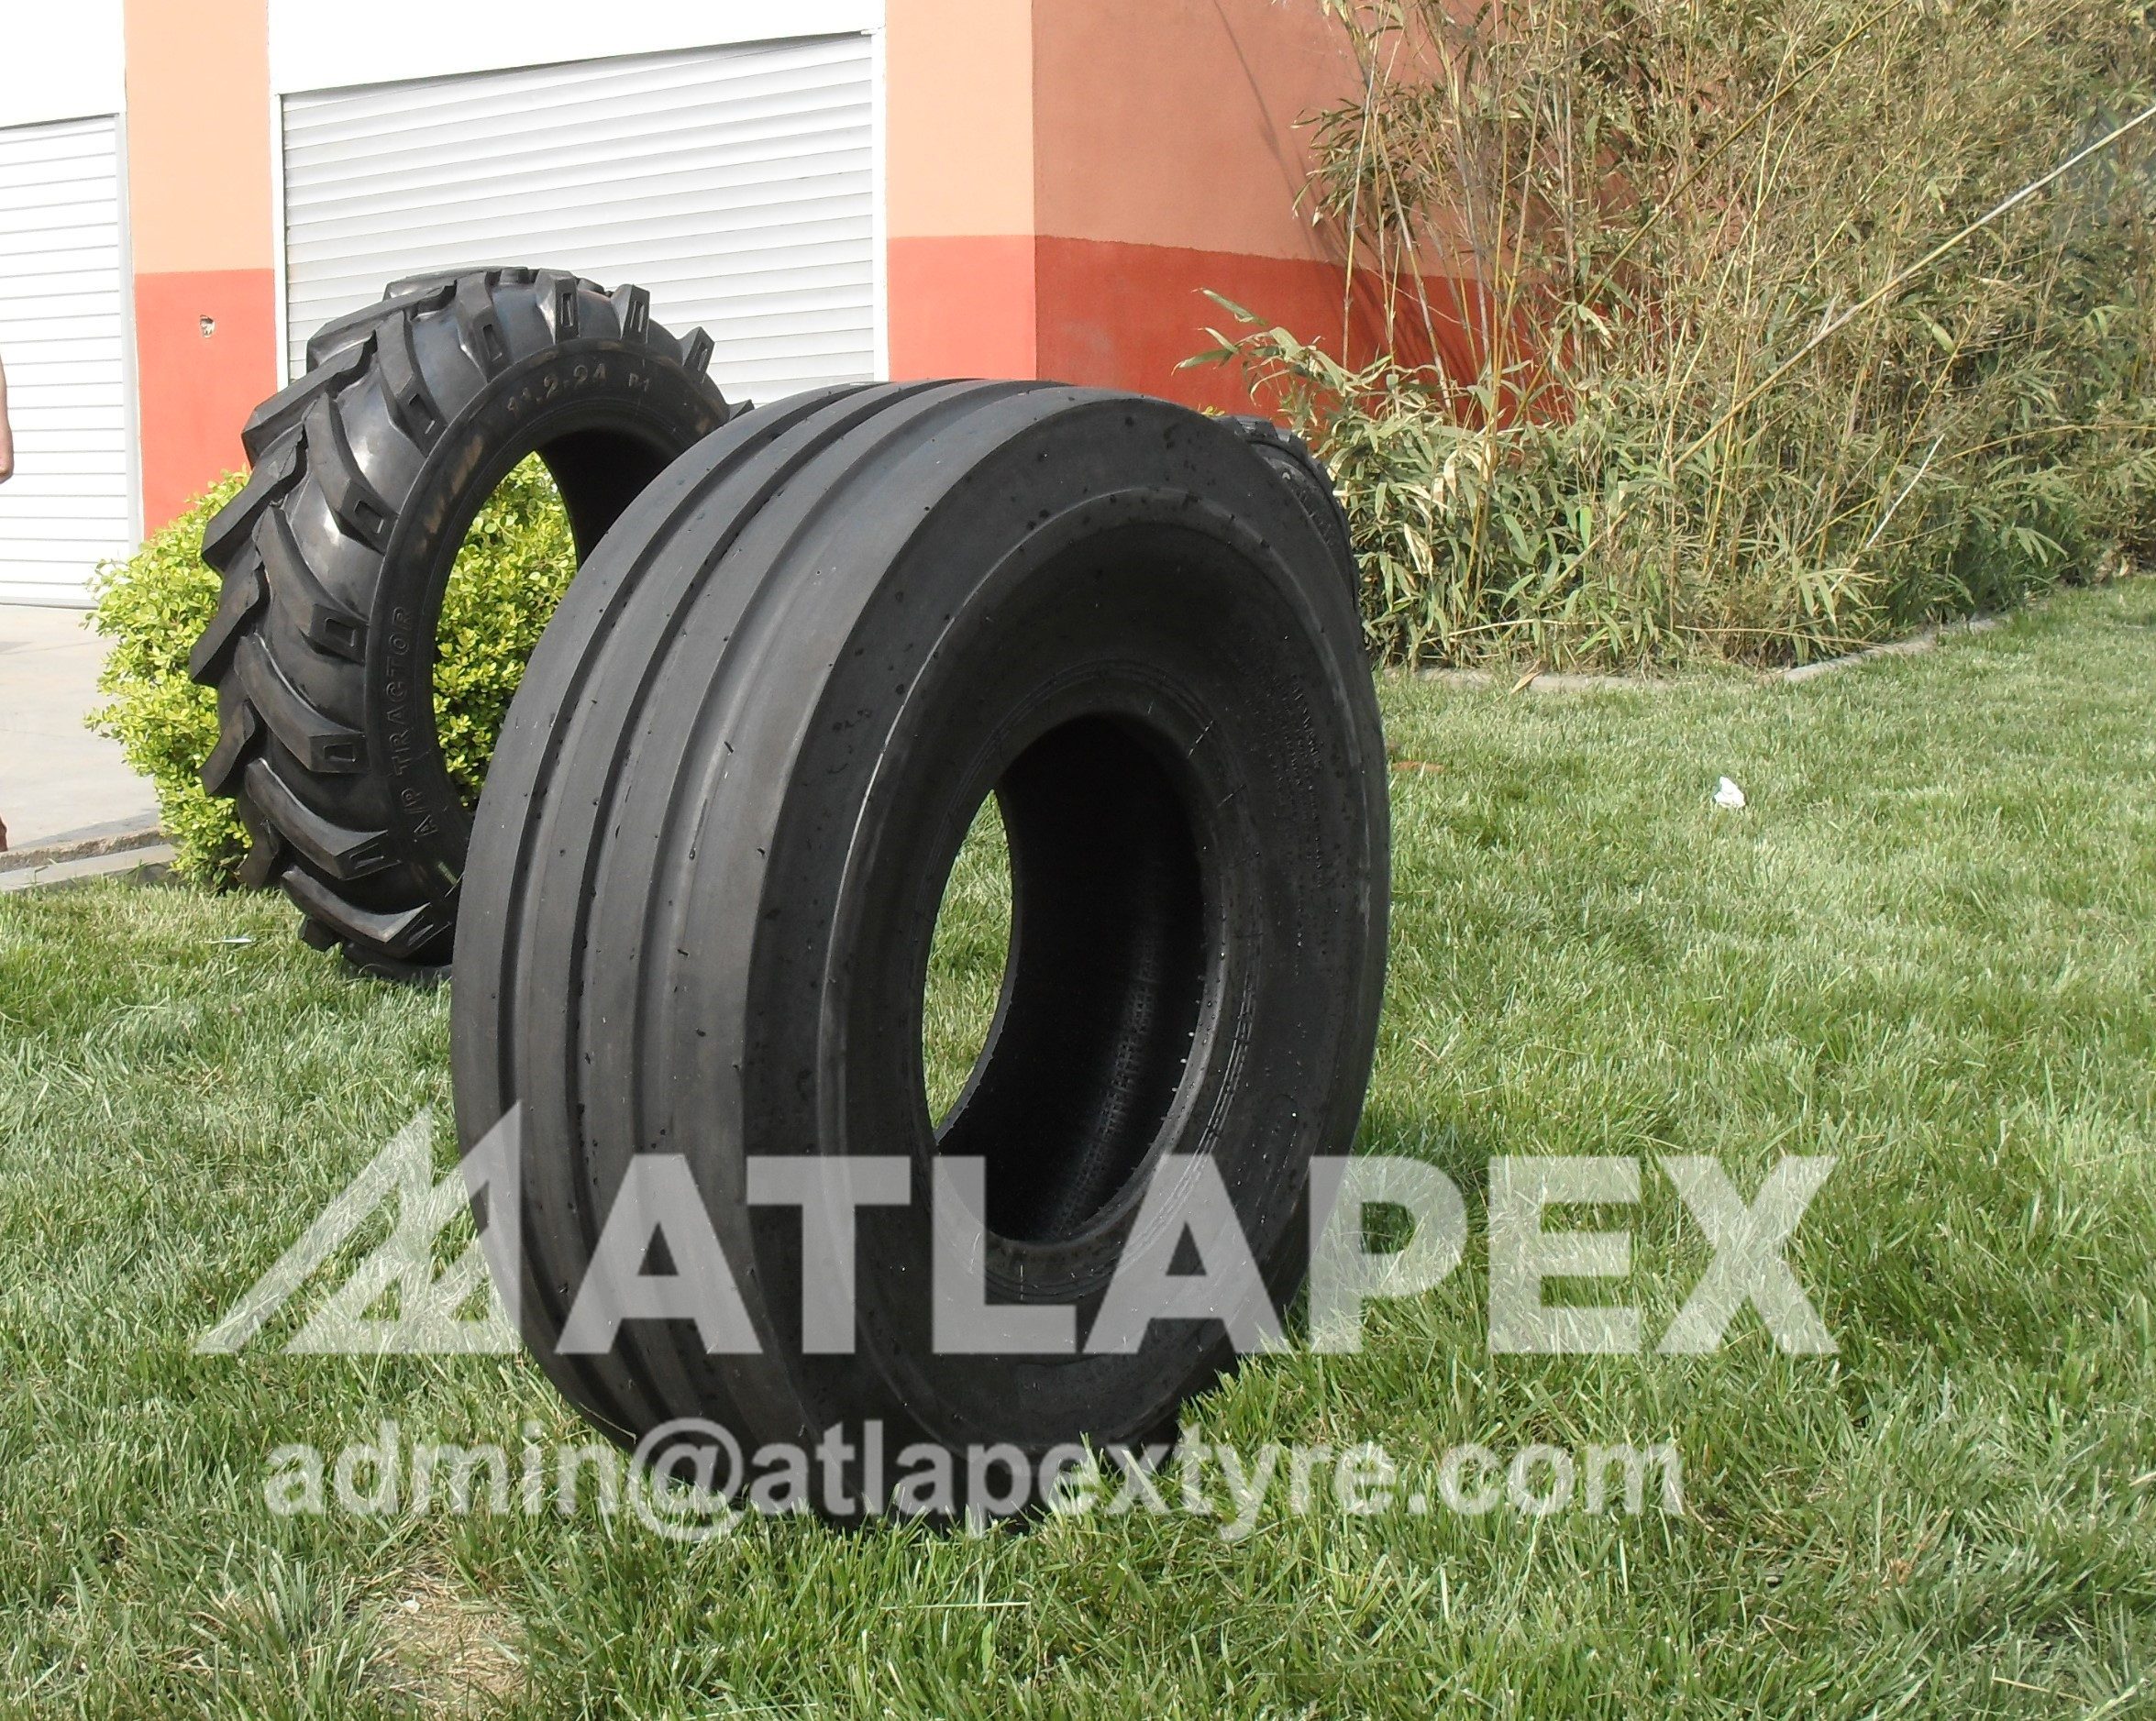 14L-16.1 F-2 For  2WD Tractor